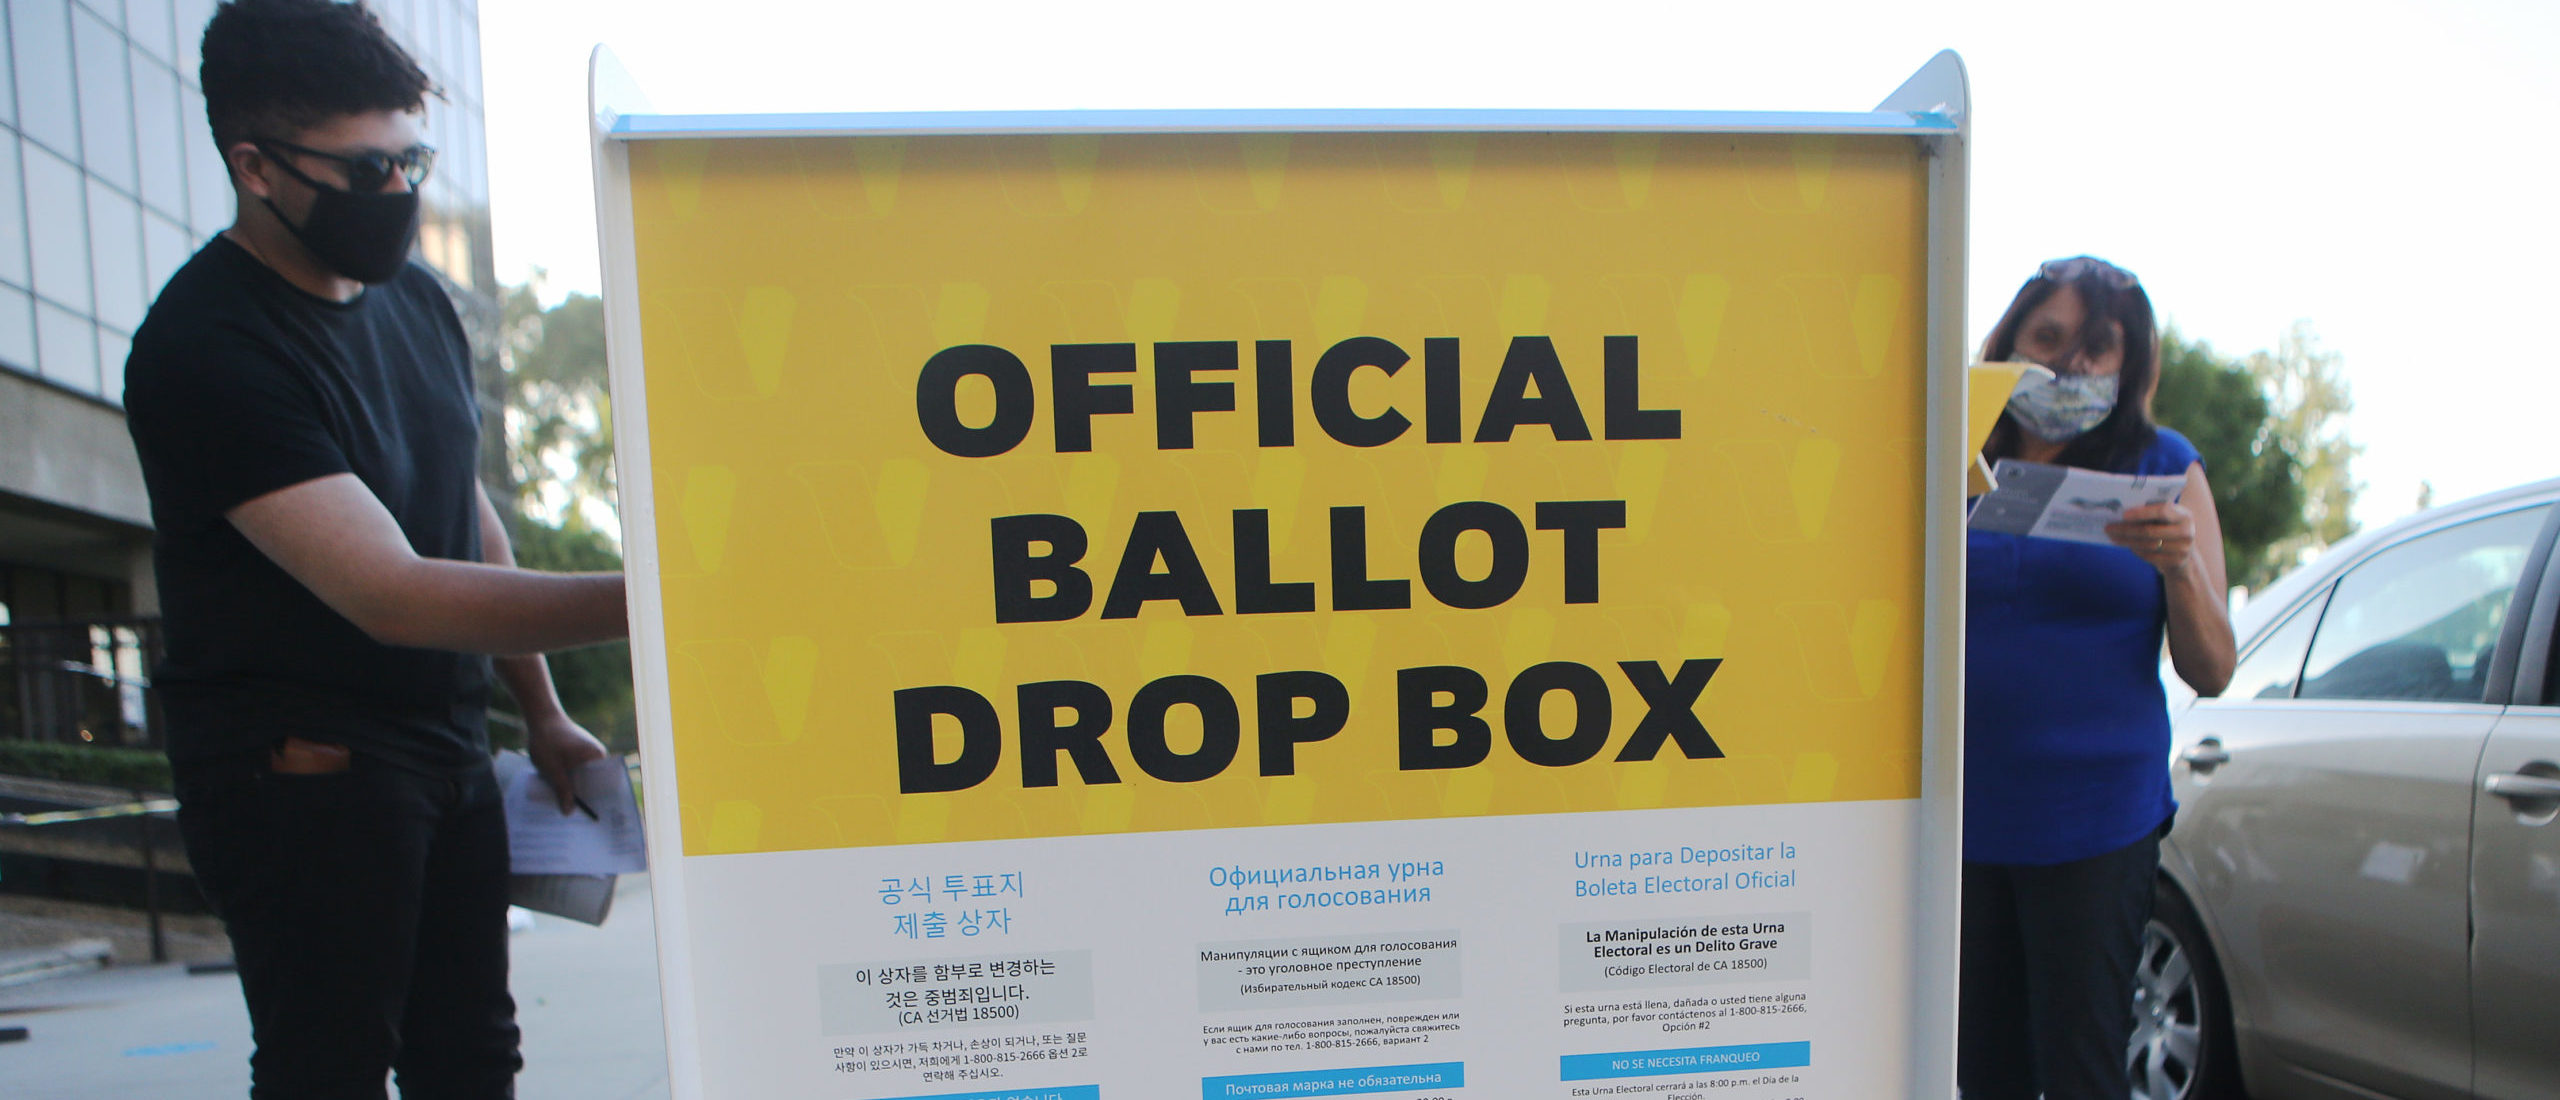 Pedestrians place ballots in an official mail-in ballot drop box outside of the L.A. County Registrar's office ahead of Election Day on October 14, 2020. (Photo by Mario Tama/Getty Images)